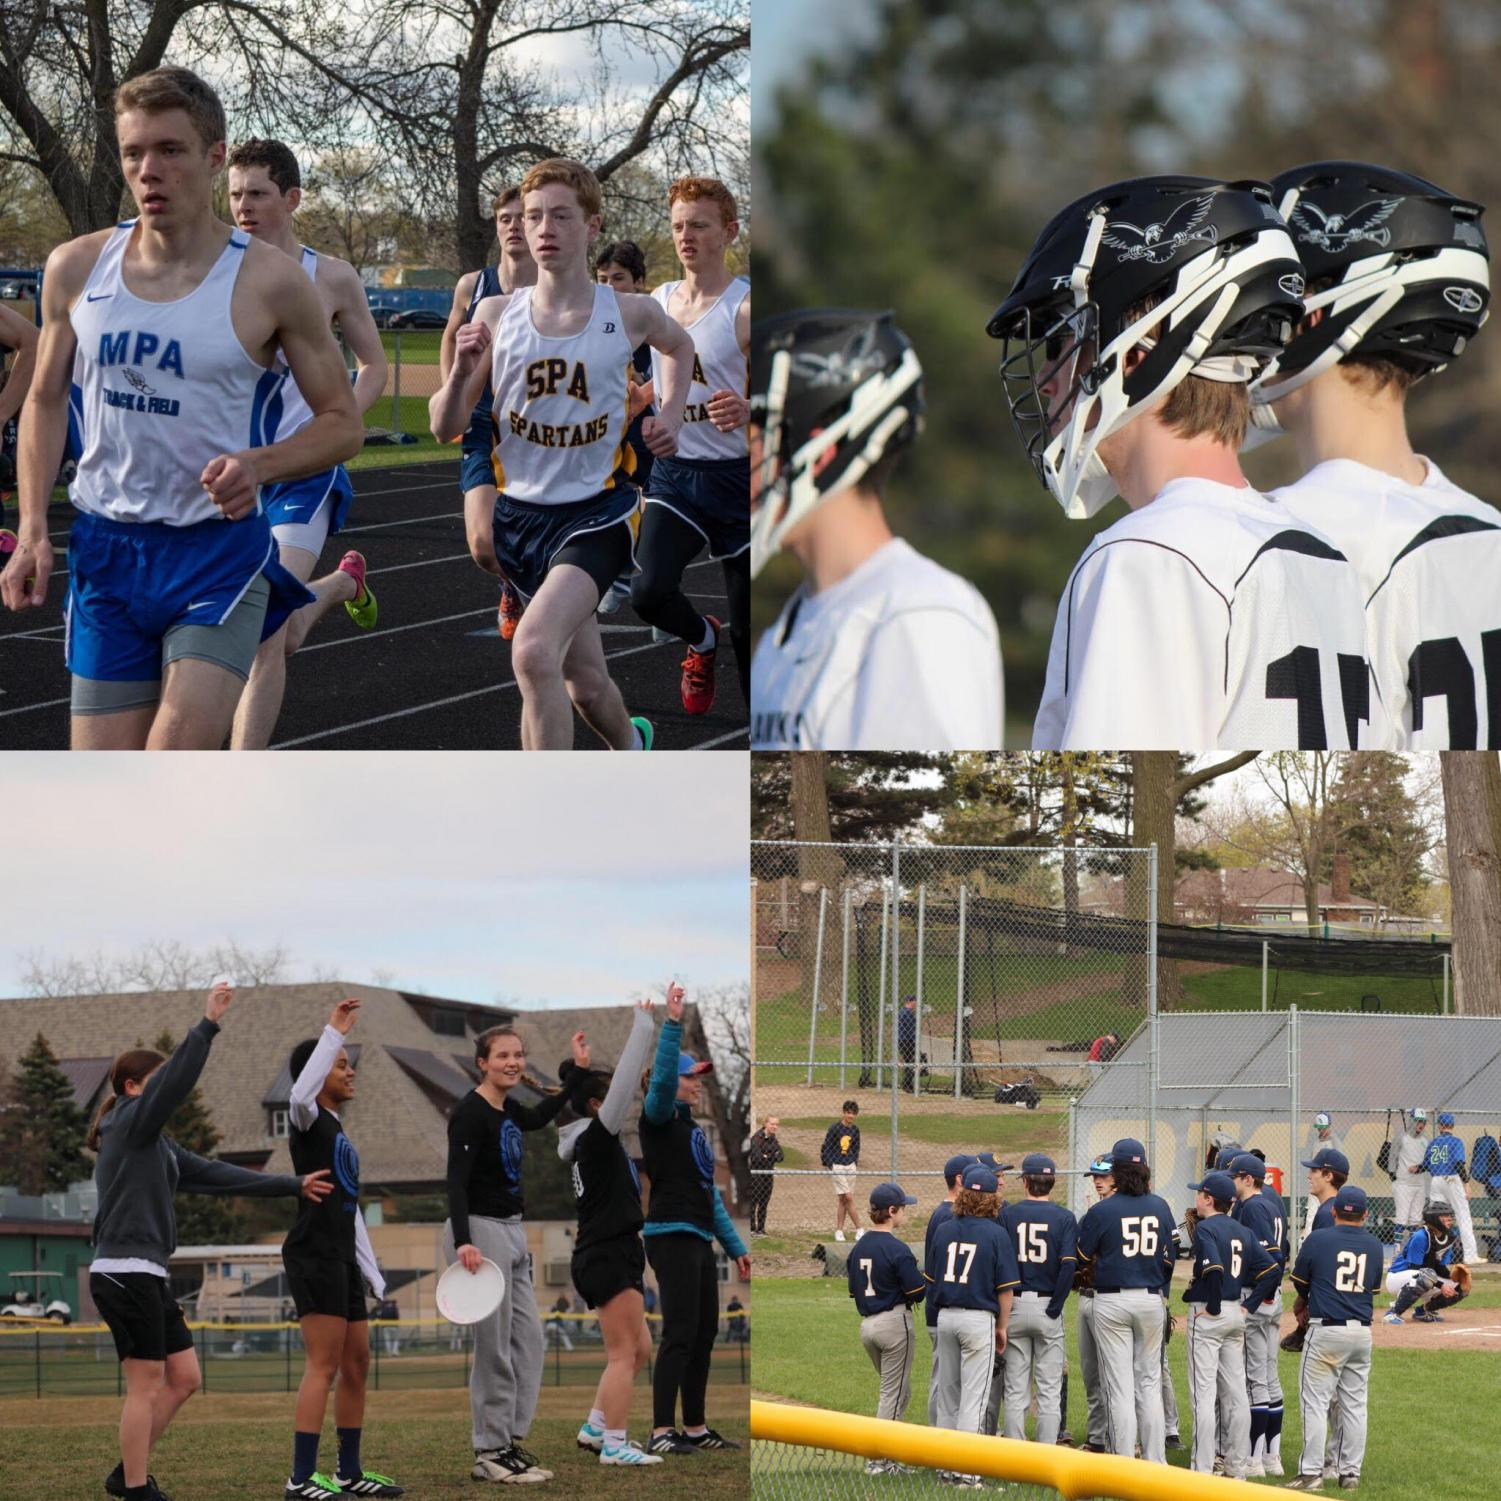 At the end of each sports season, teams play a section tournament in hopes of making it to state.